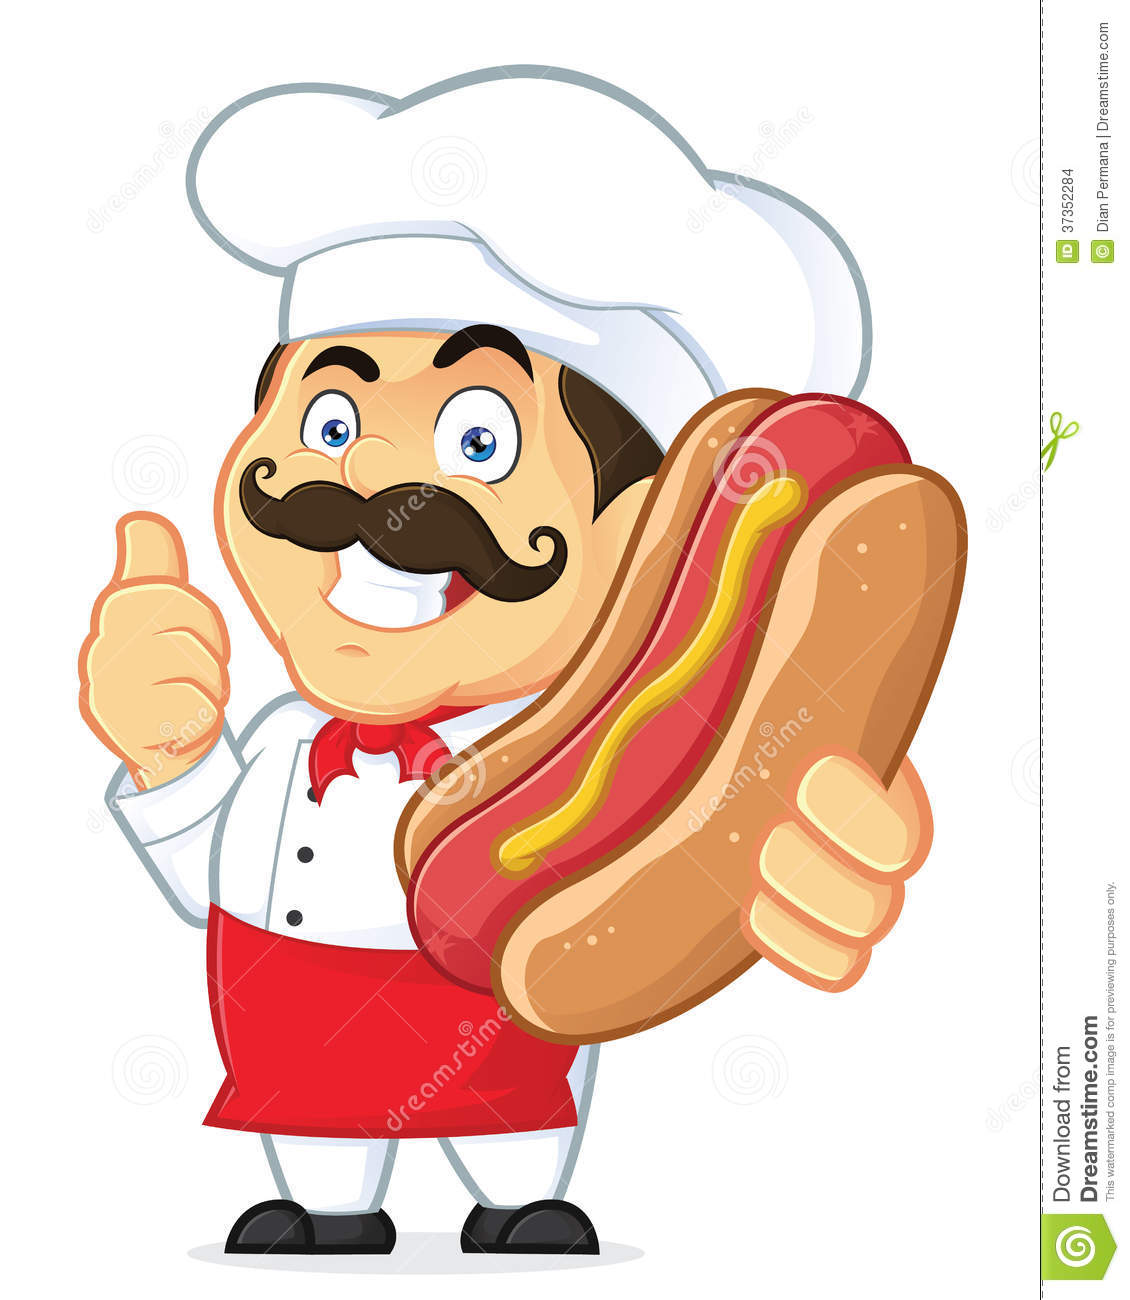 Clipart Picture of a Chef Cartoon Character Holding Hot Dog.